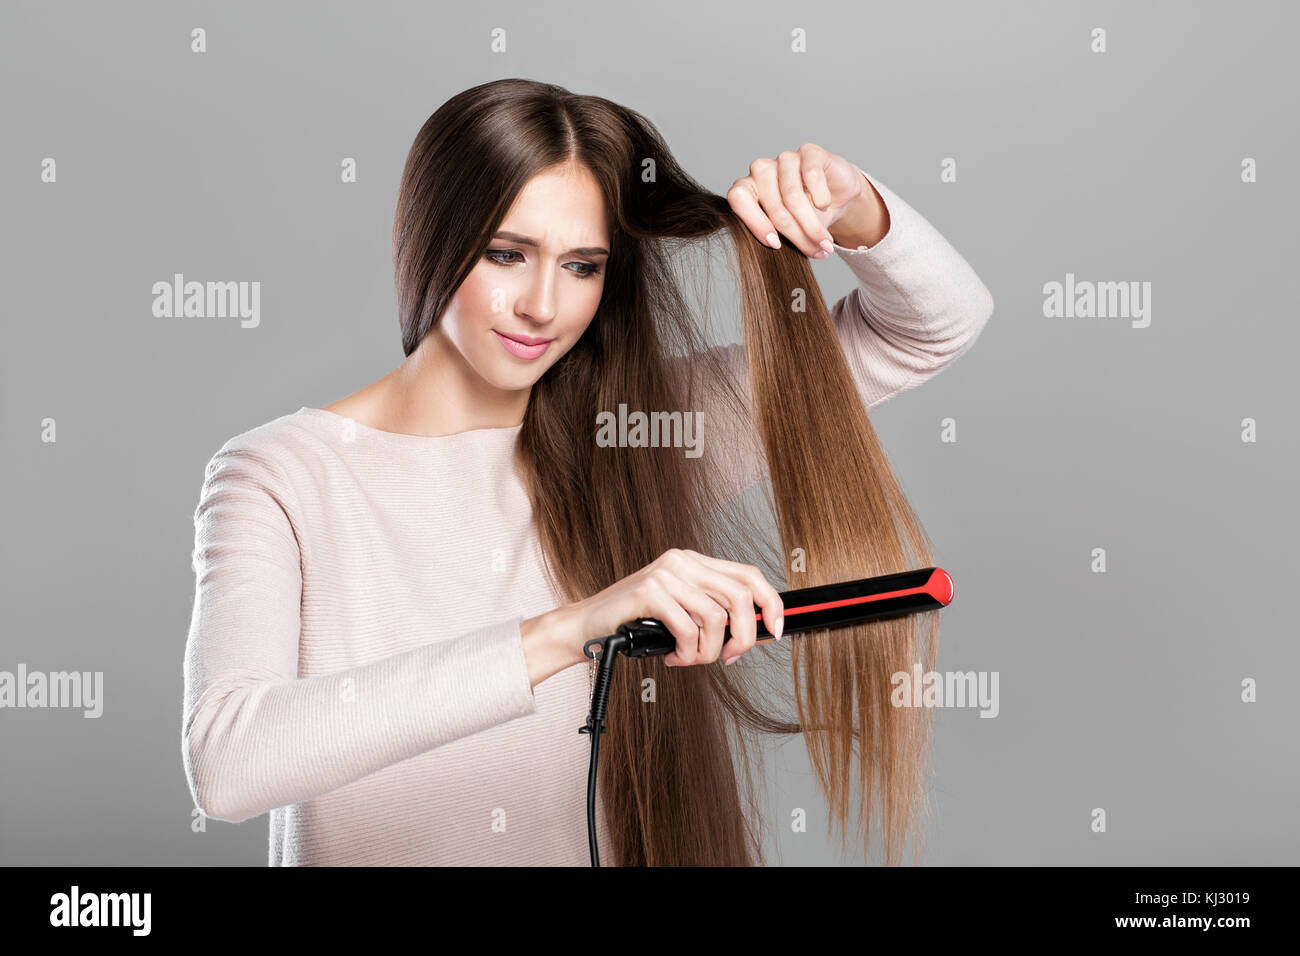 Iron Hair Stock Photos Amp Iron Hair Stock Images Alamy